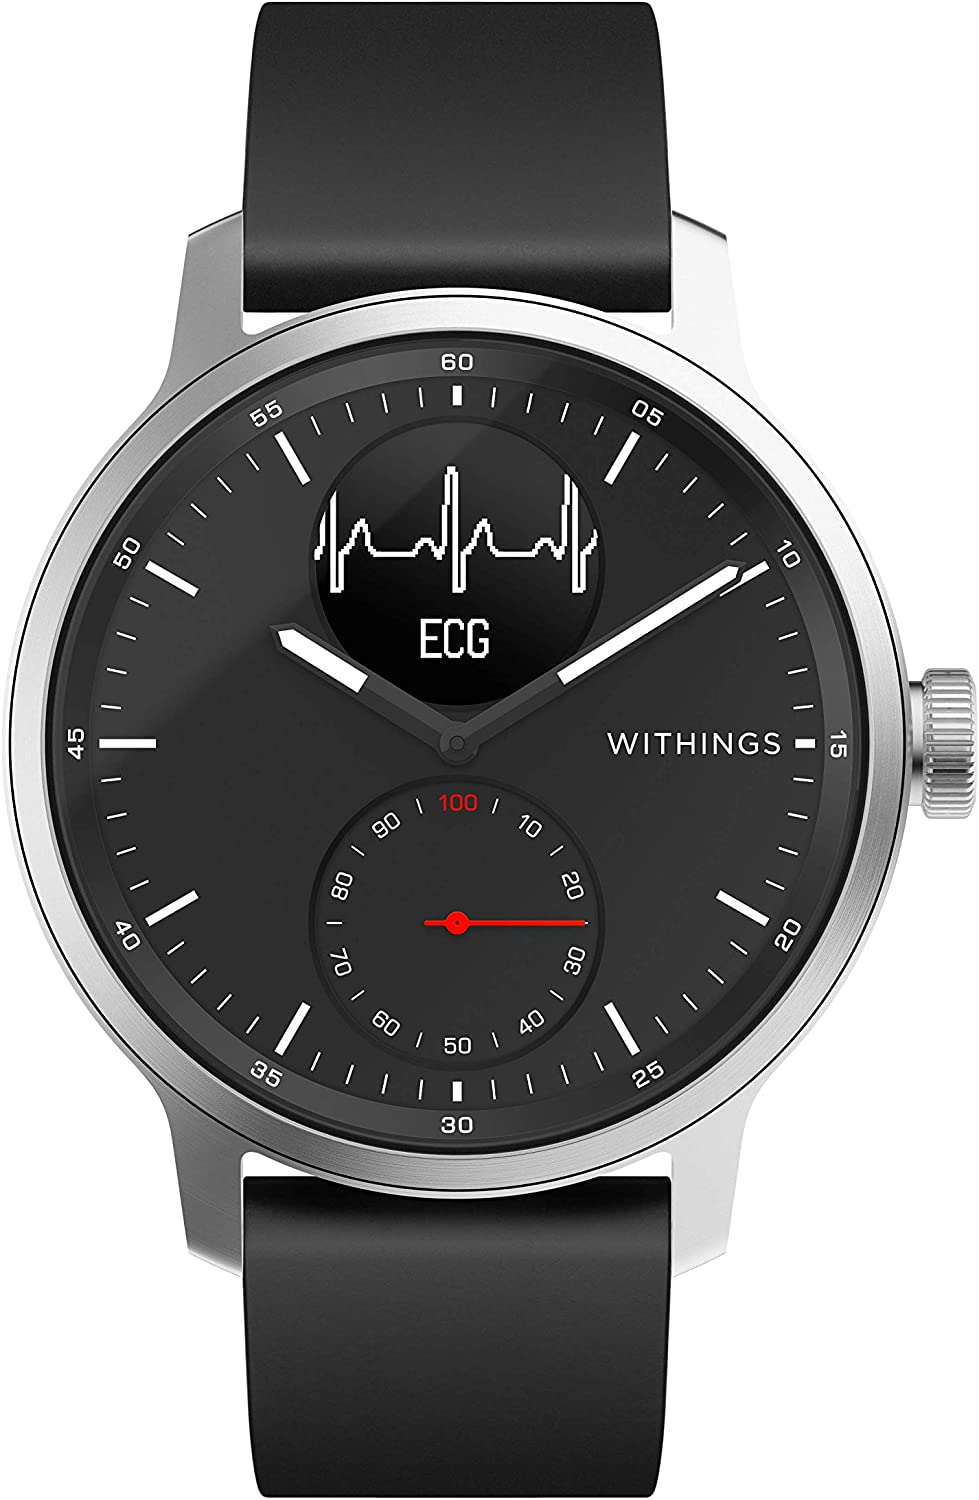 Withings ScanWatch - Reloj inteligente híbrido con ECG, tensiómetro y oxímetro, 42 mm, color Negro